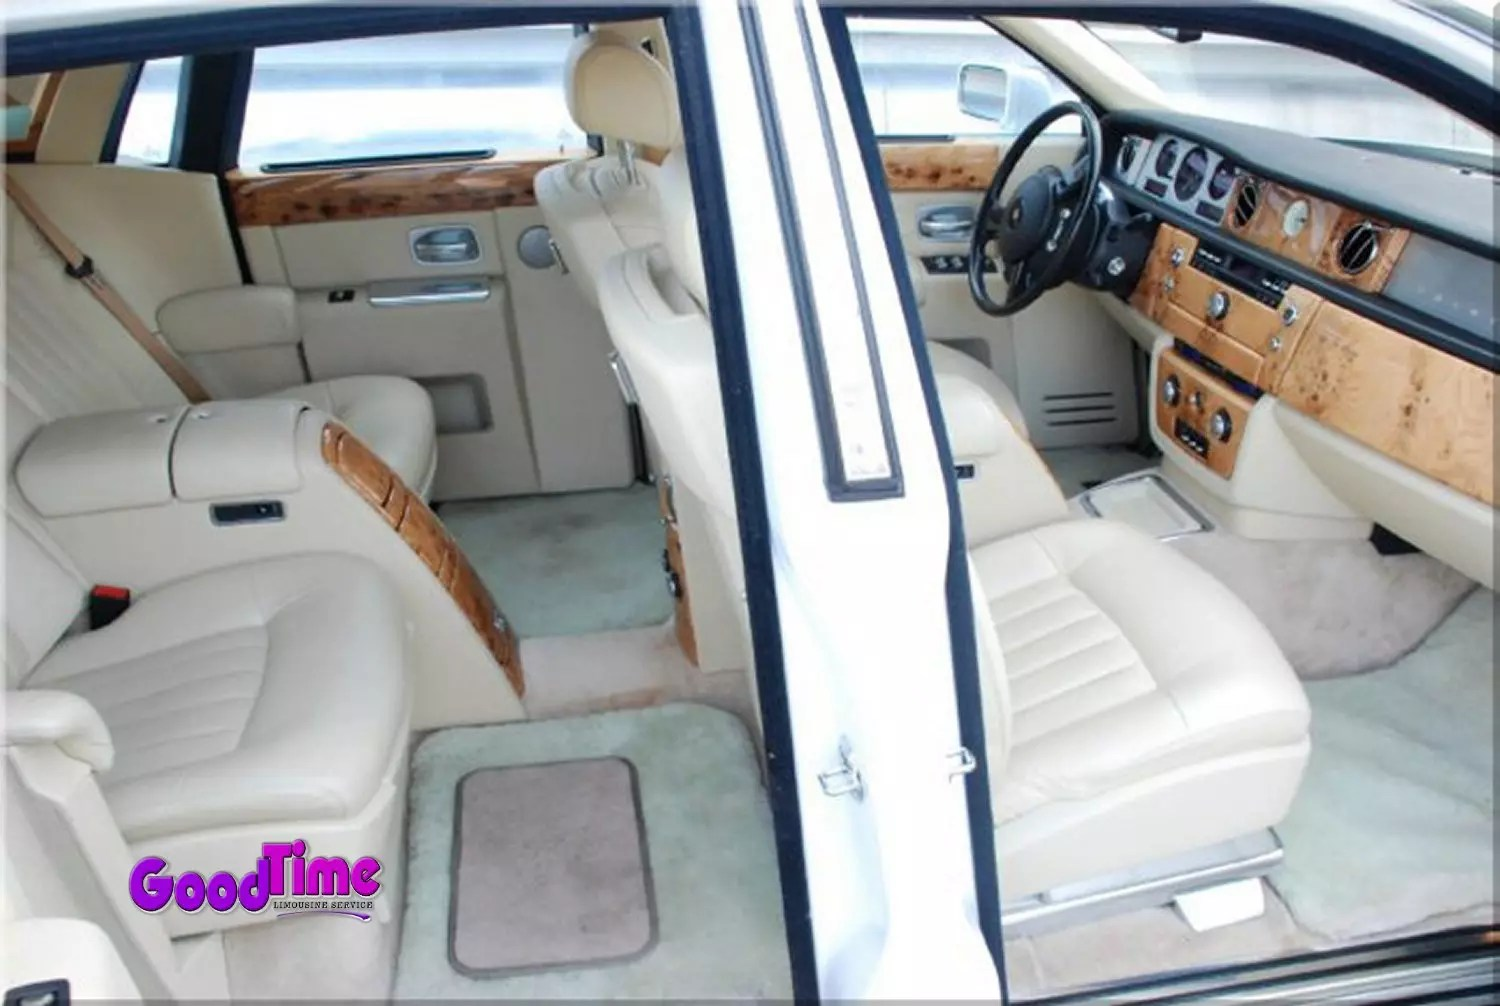 Rolls Royce Phantom White Limo Int 8 2 LIMO RENTAL FLEET